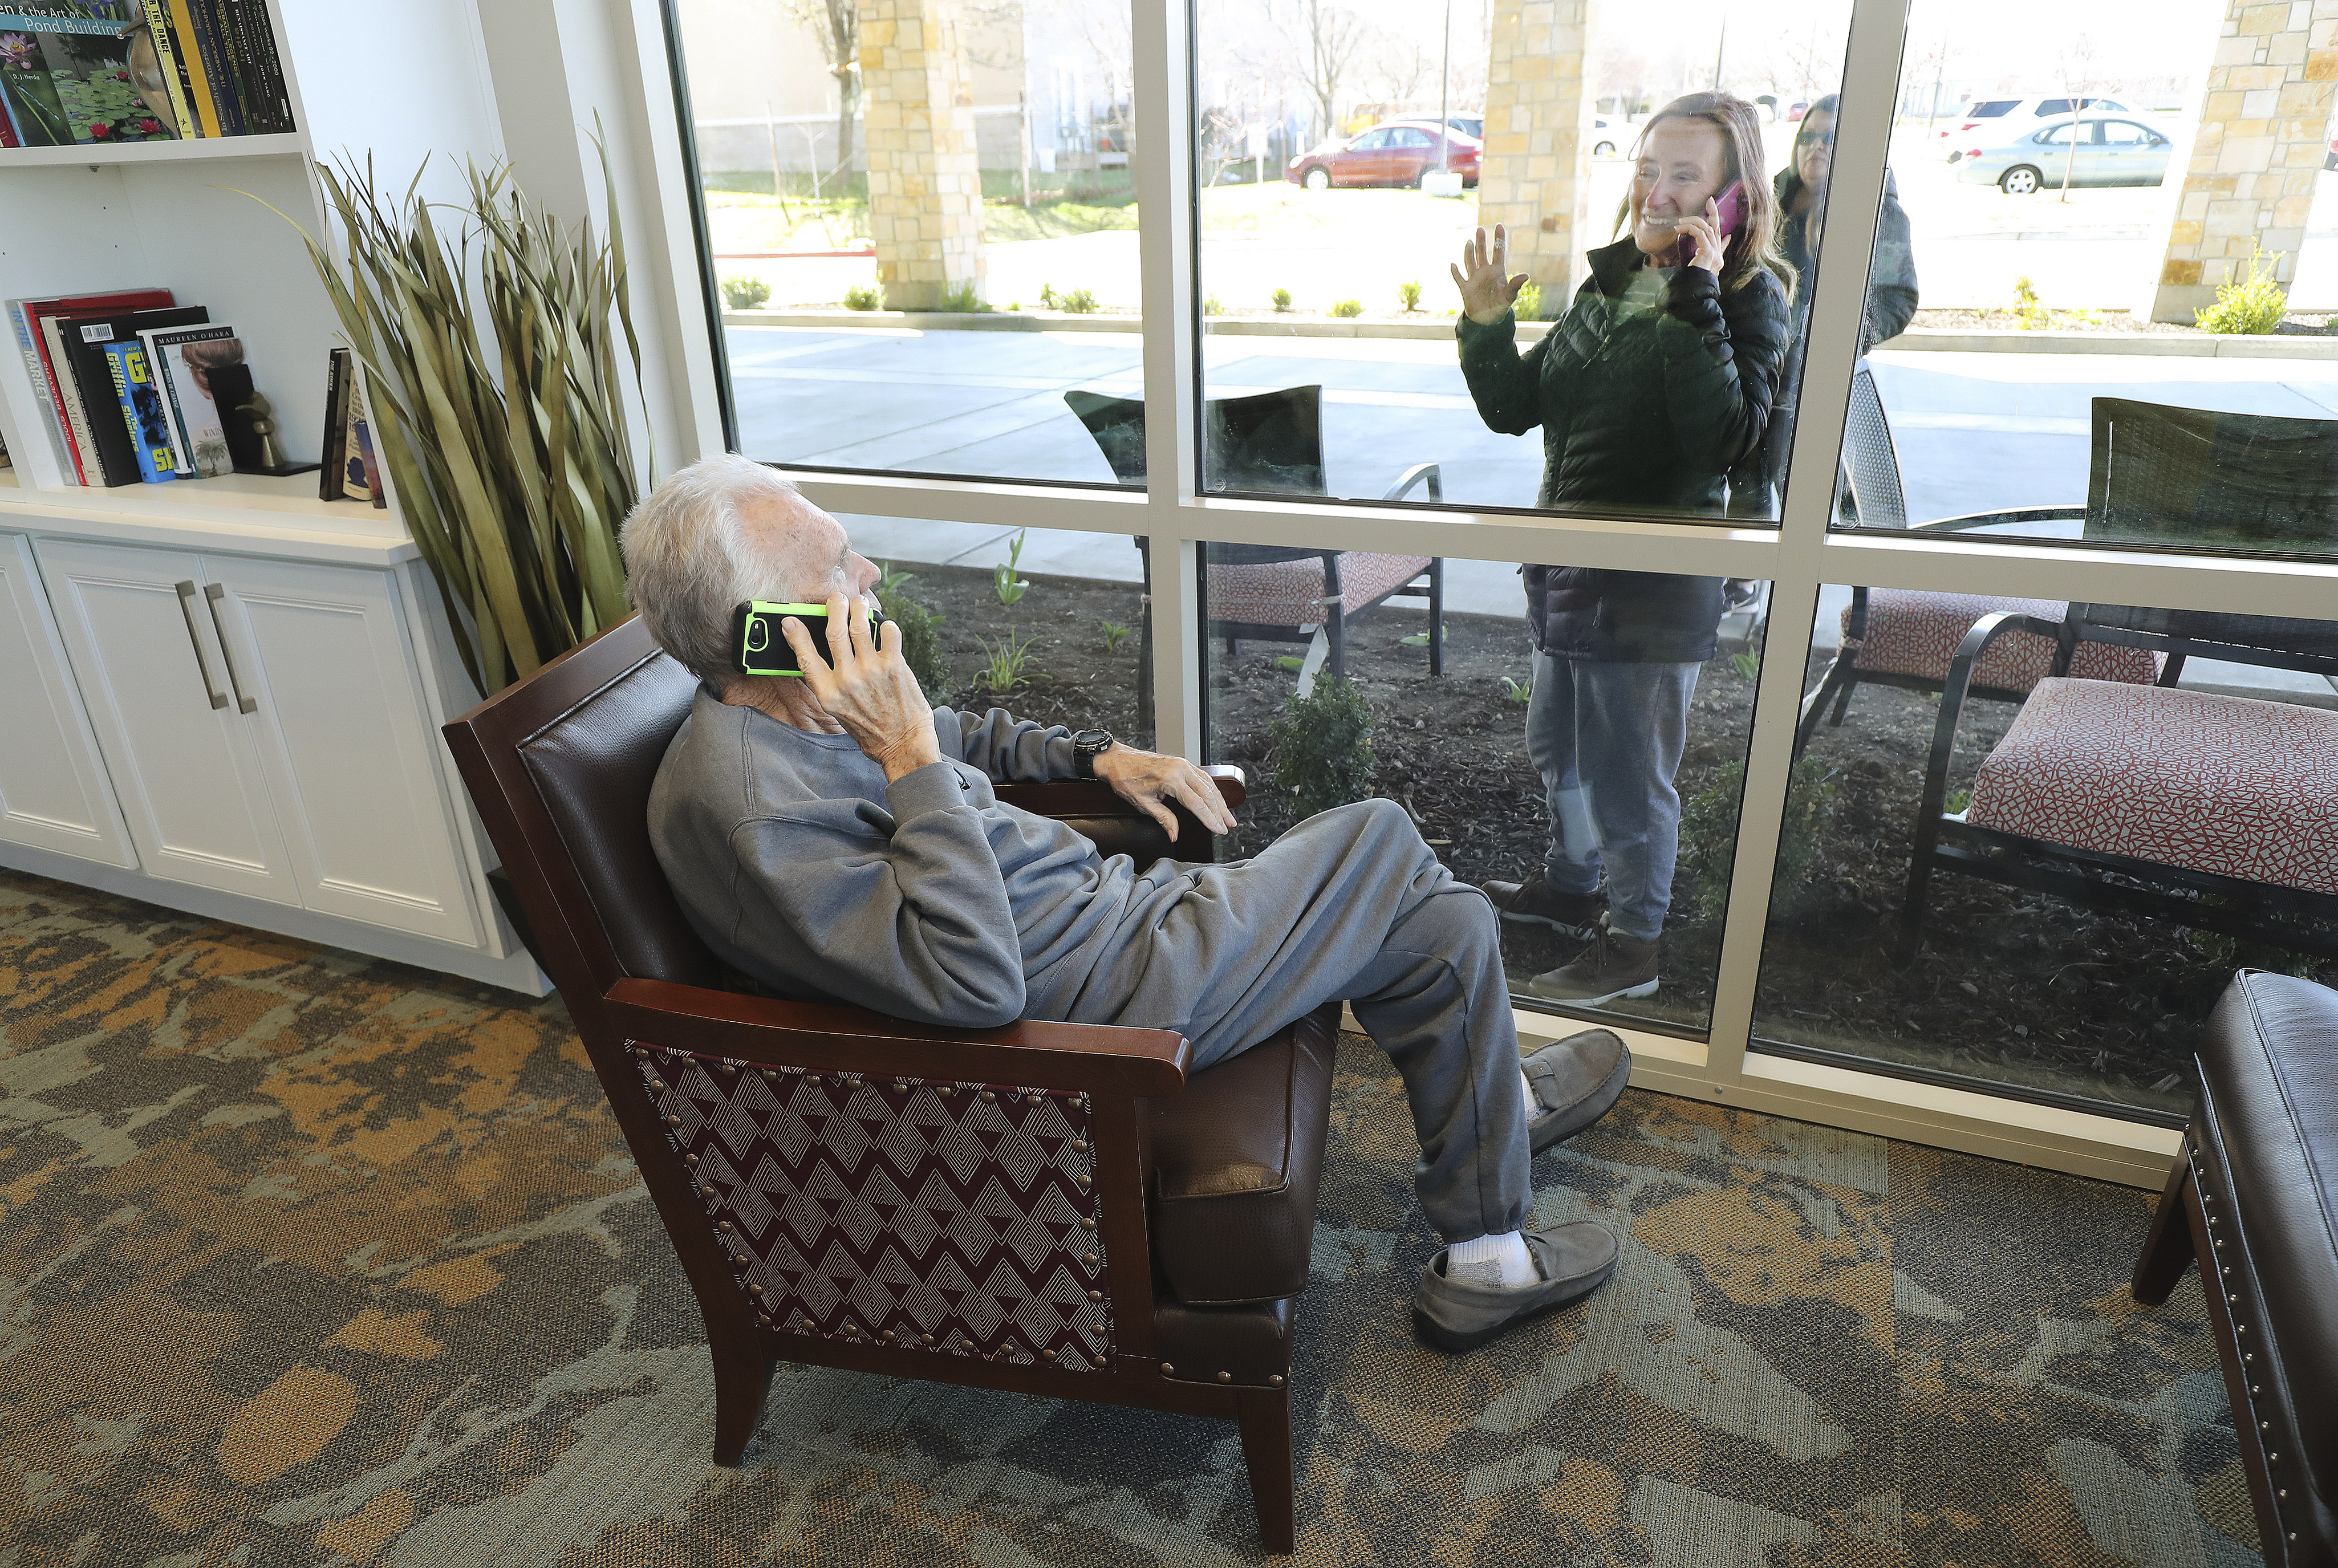 Kaye Knighton, a resident at Creekside Assisted Living and Senior Center in Bountiful, talks by cellphone to daughter-in-law Darla Knighton on Friday, March 27, 2020. Family of residents come to the window to see and talk to them via a cellphone due to Covid-19 restrictions.